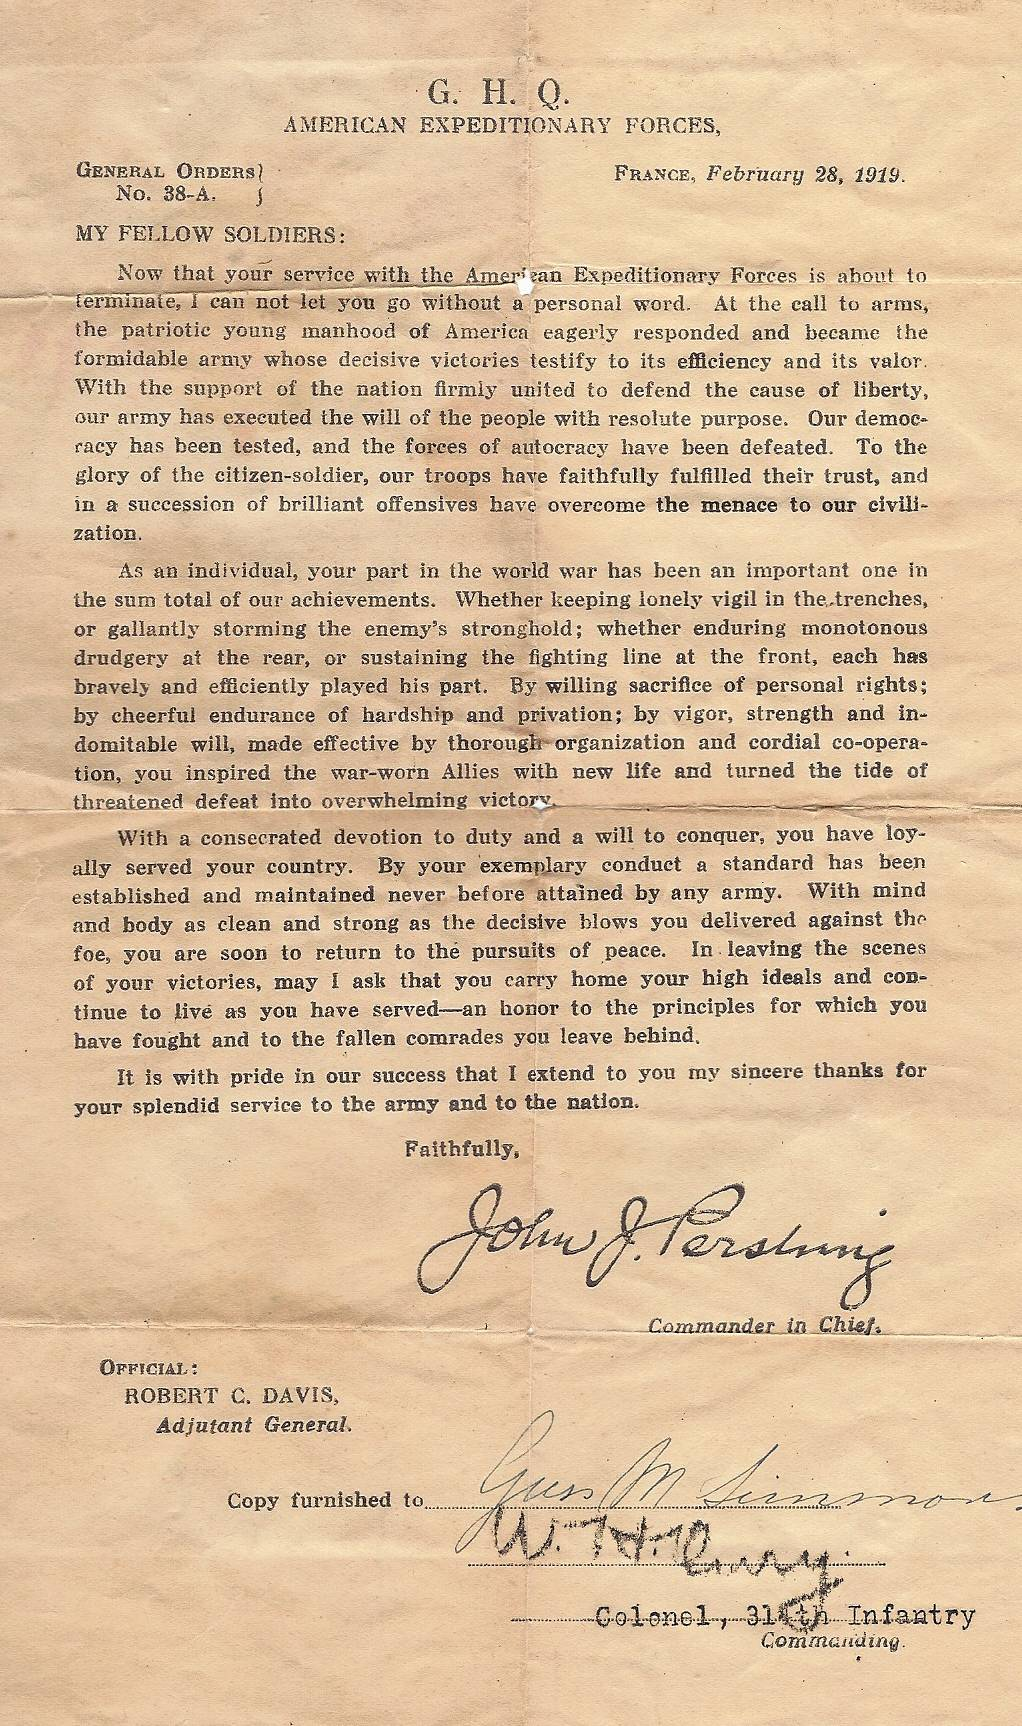 314th Infantry Regiment - Gus Mabry Simons - Letter from Commander in Chief Pershing February 28 1919